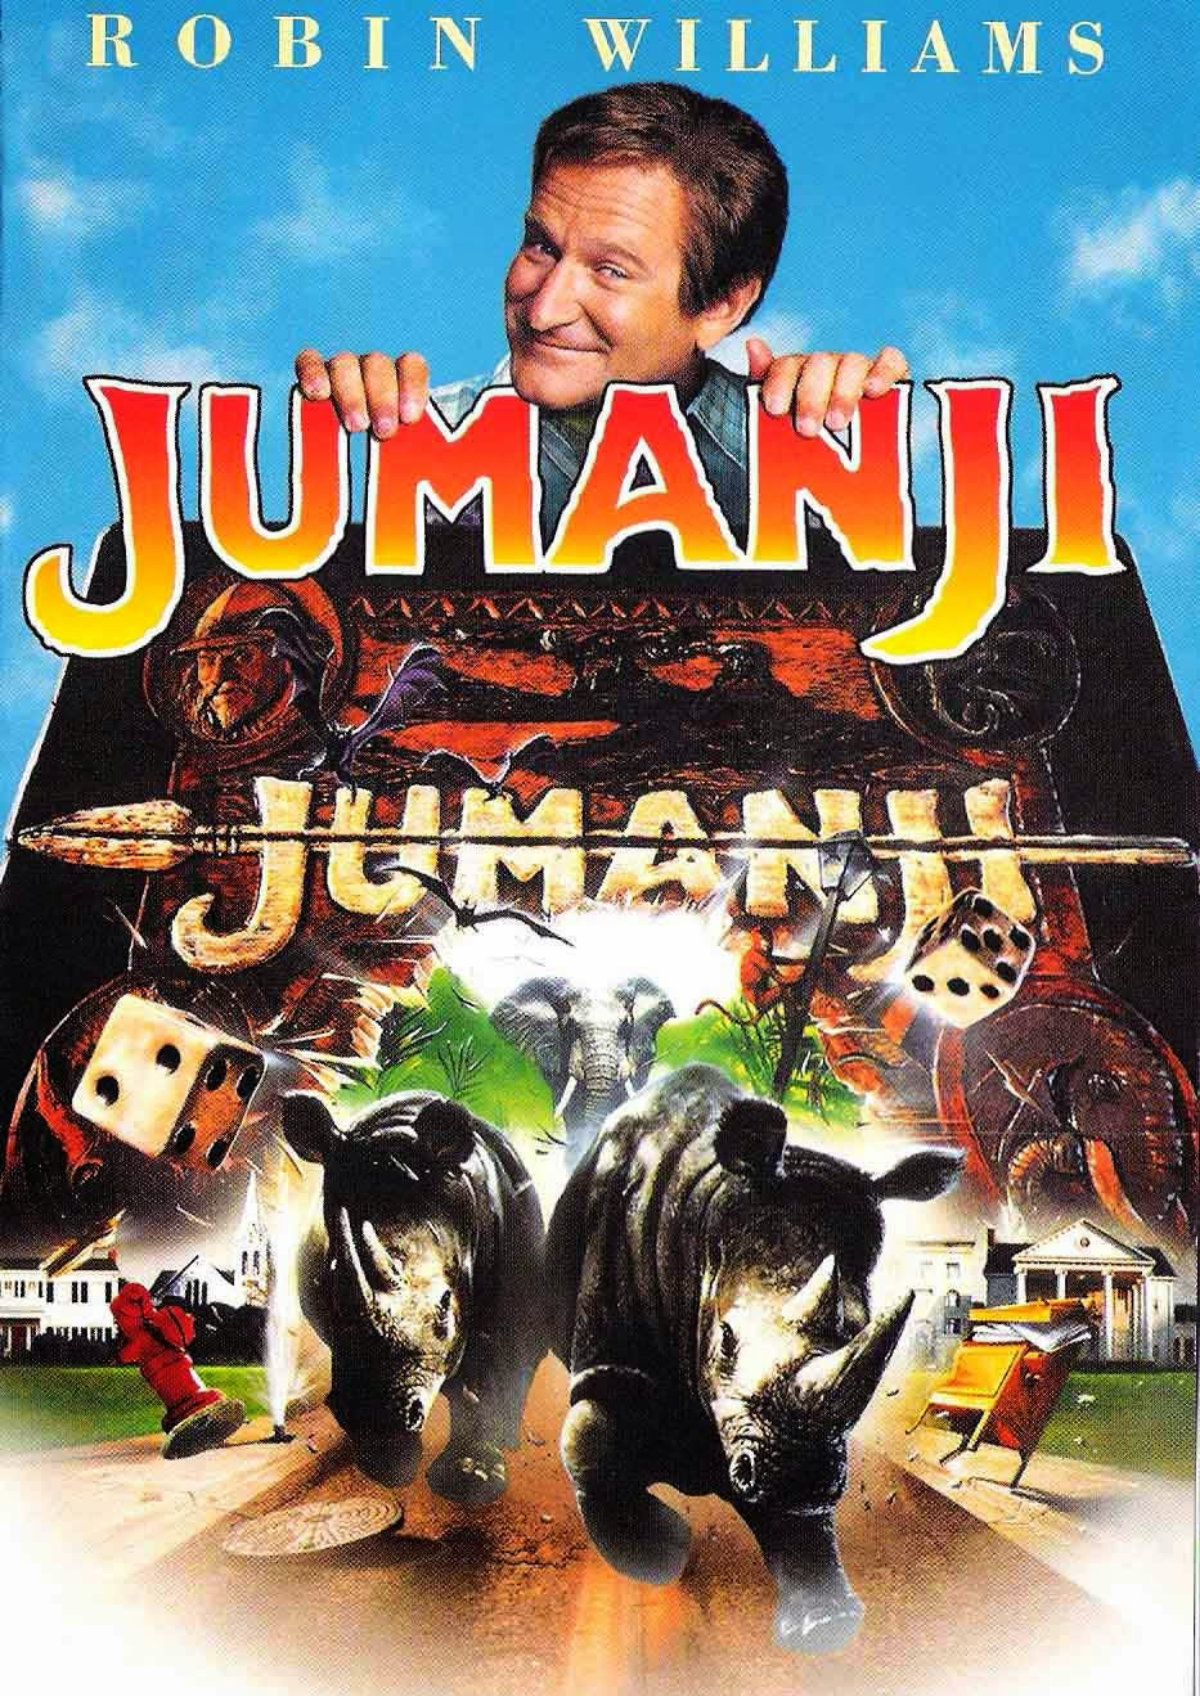 'Jumanji' movie poster